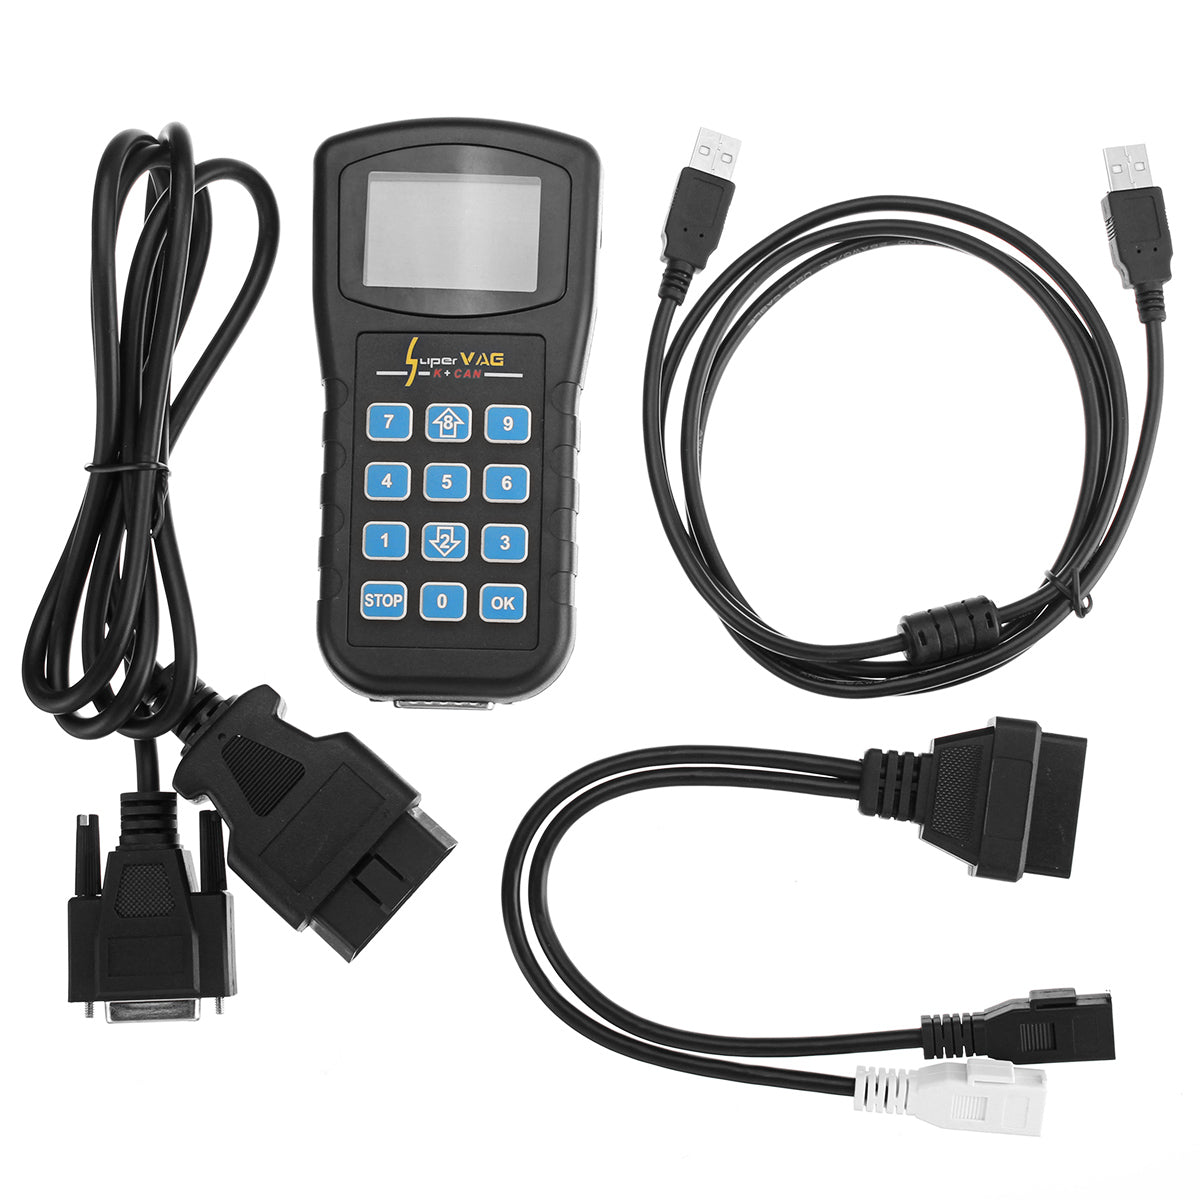 Super VAG K CAN Car Diagnostic Scanner Car Code Reader for VW/Audi/Skoda OBD V4.8